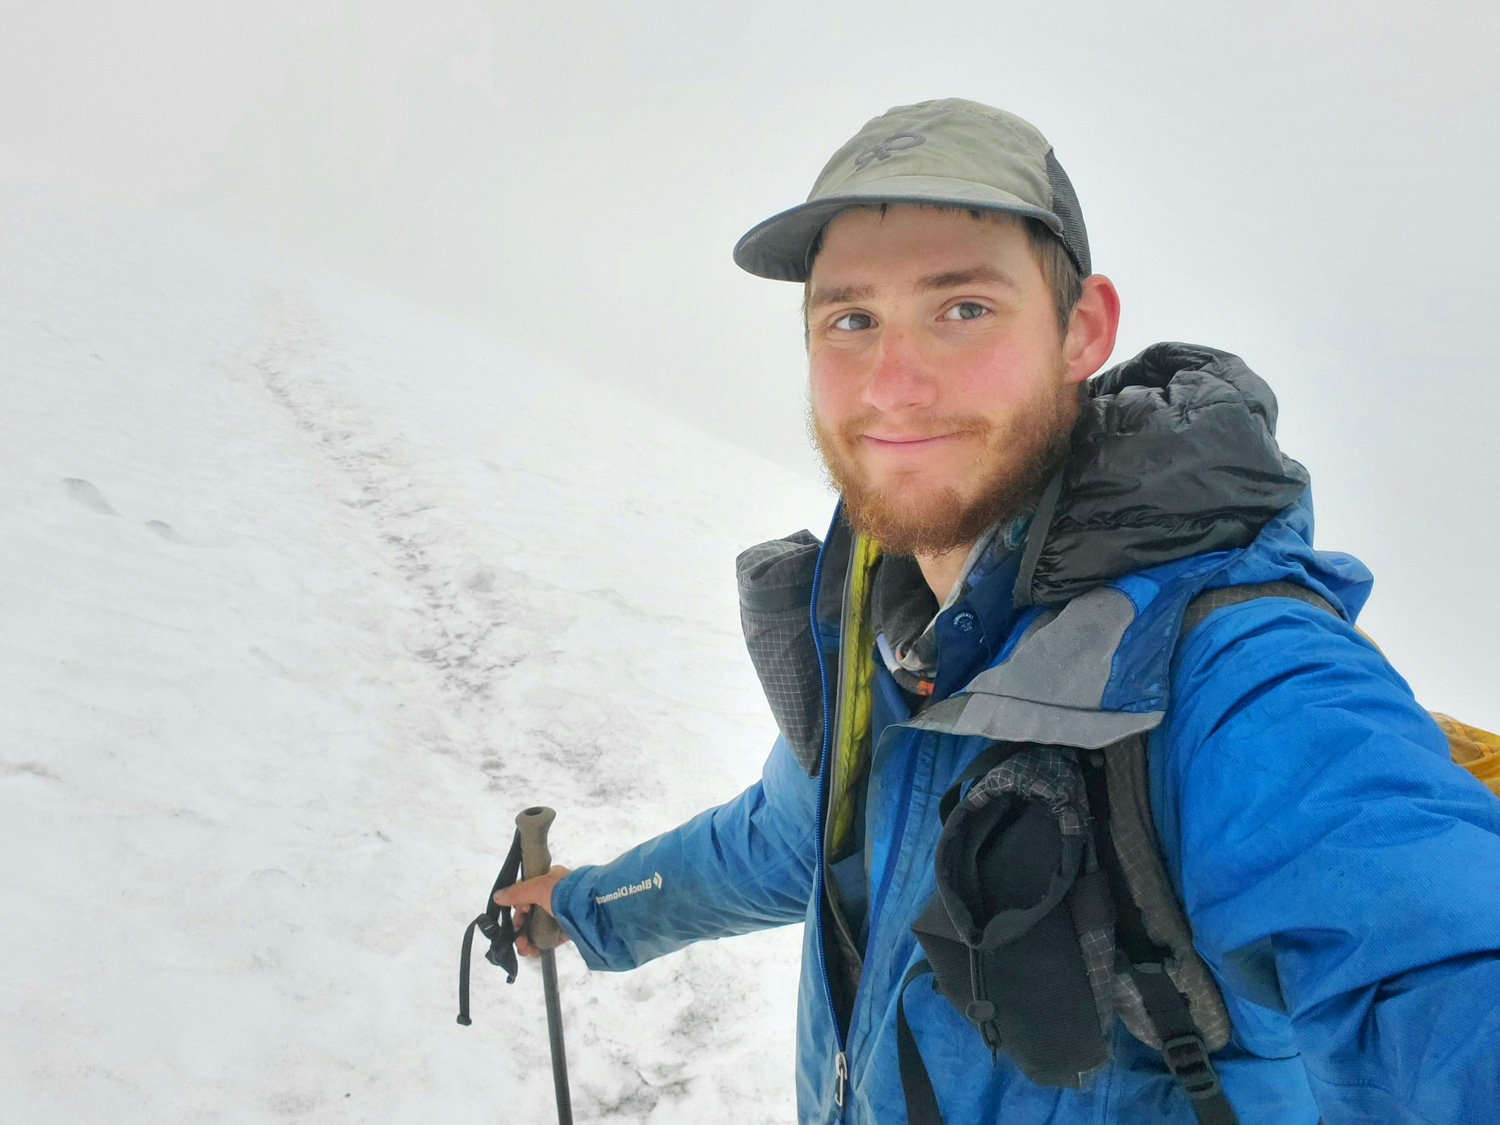 pct-day-83-matthew-snow-selfie.jpg